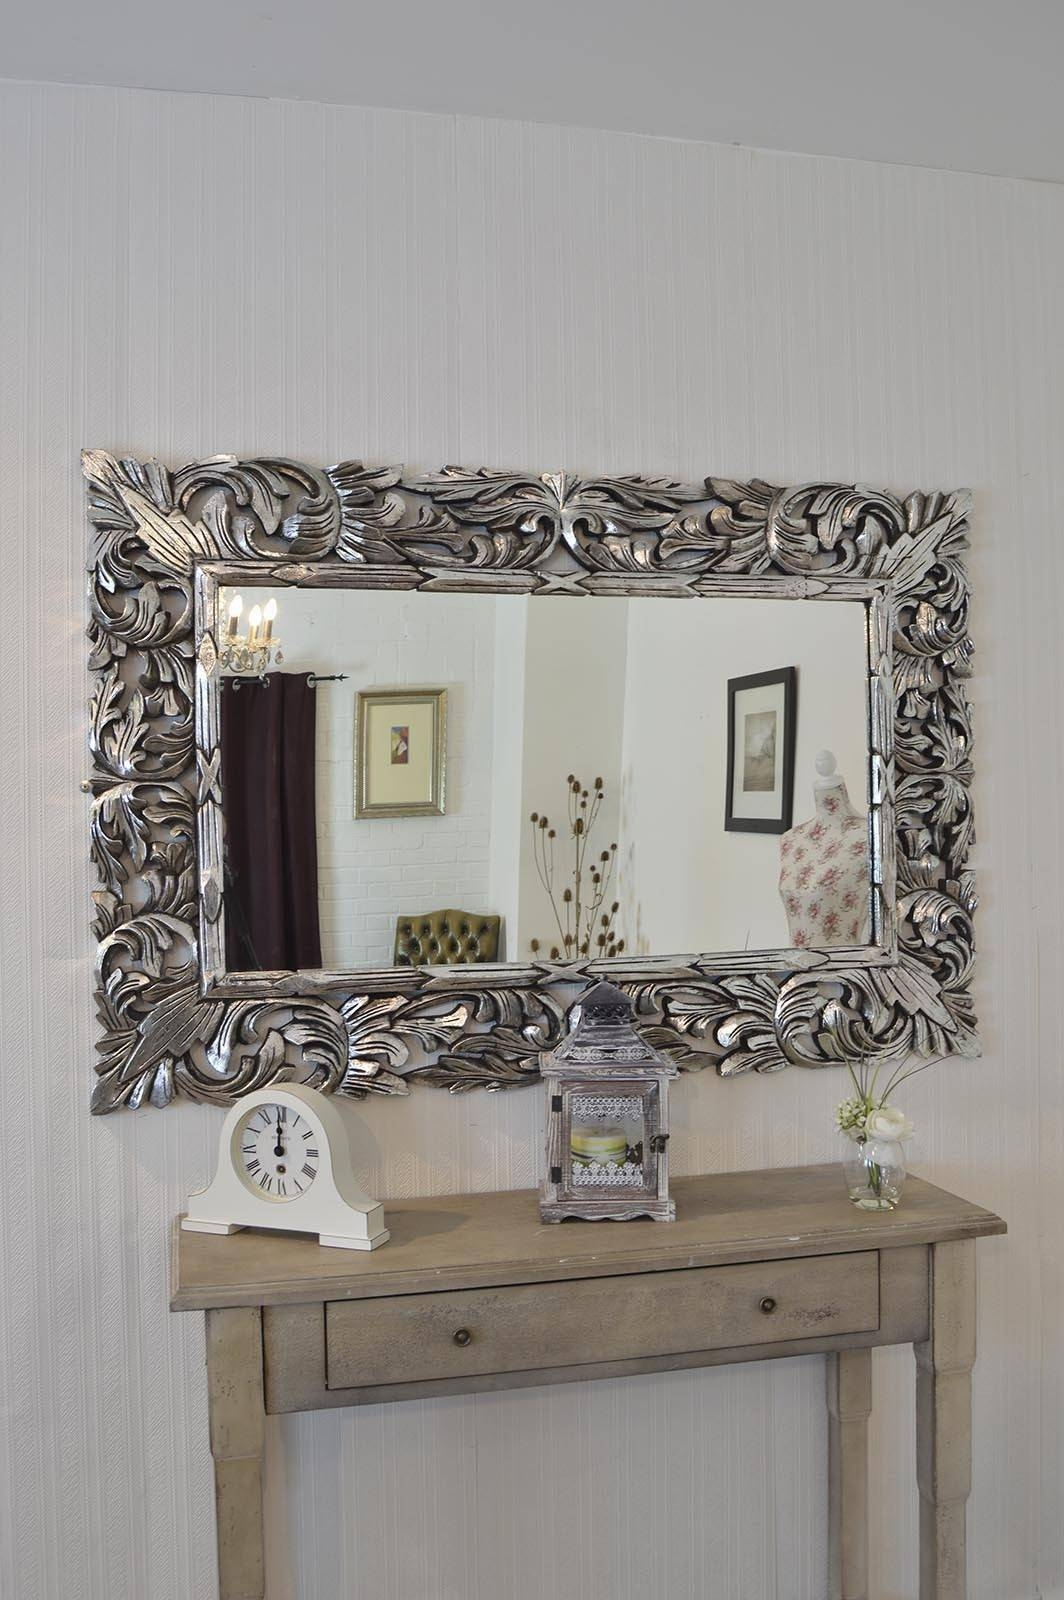 Large Silver Wall Mirror 57 Nice Decorating With Large Ornate Wall throughout Silver Ornate Framed Mirrors (Image 10 of 25)